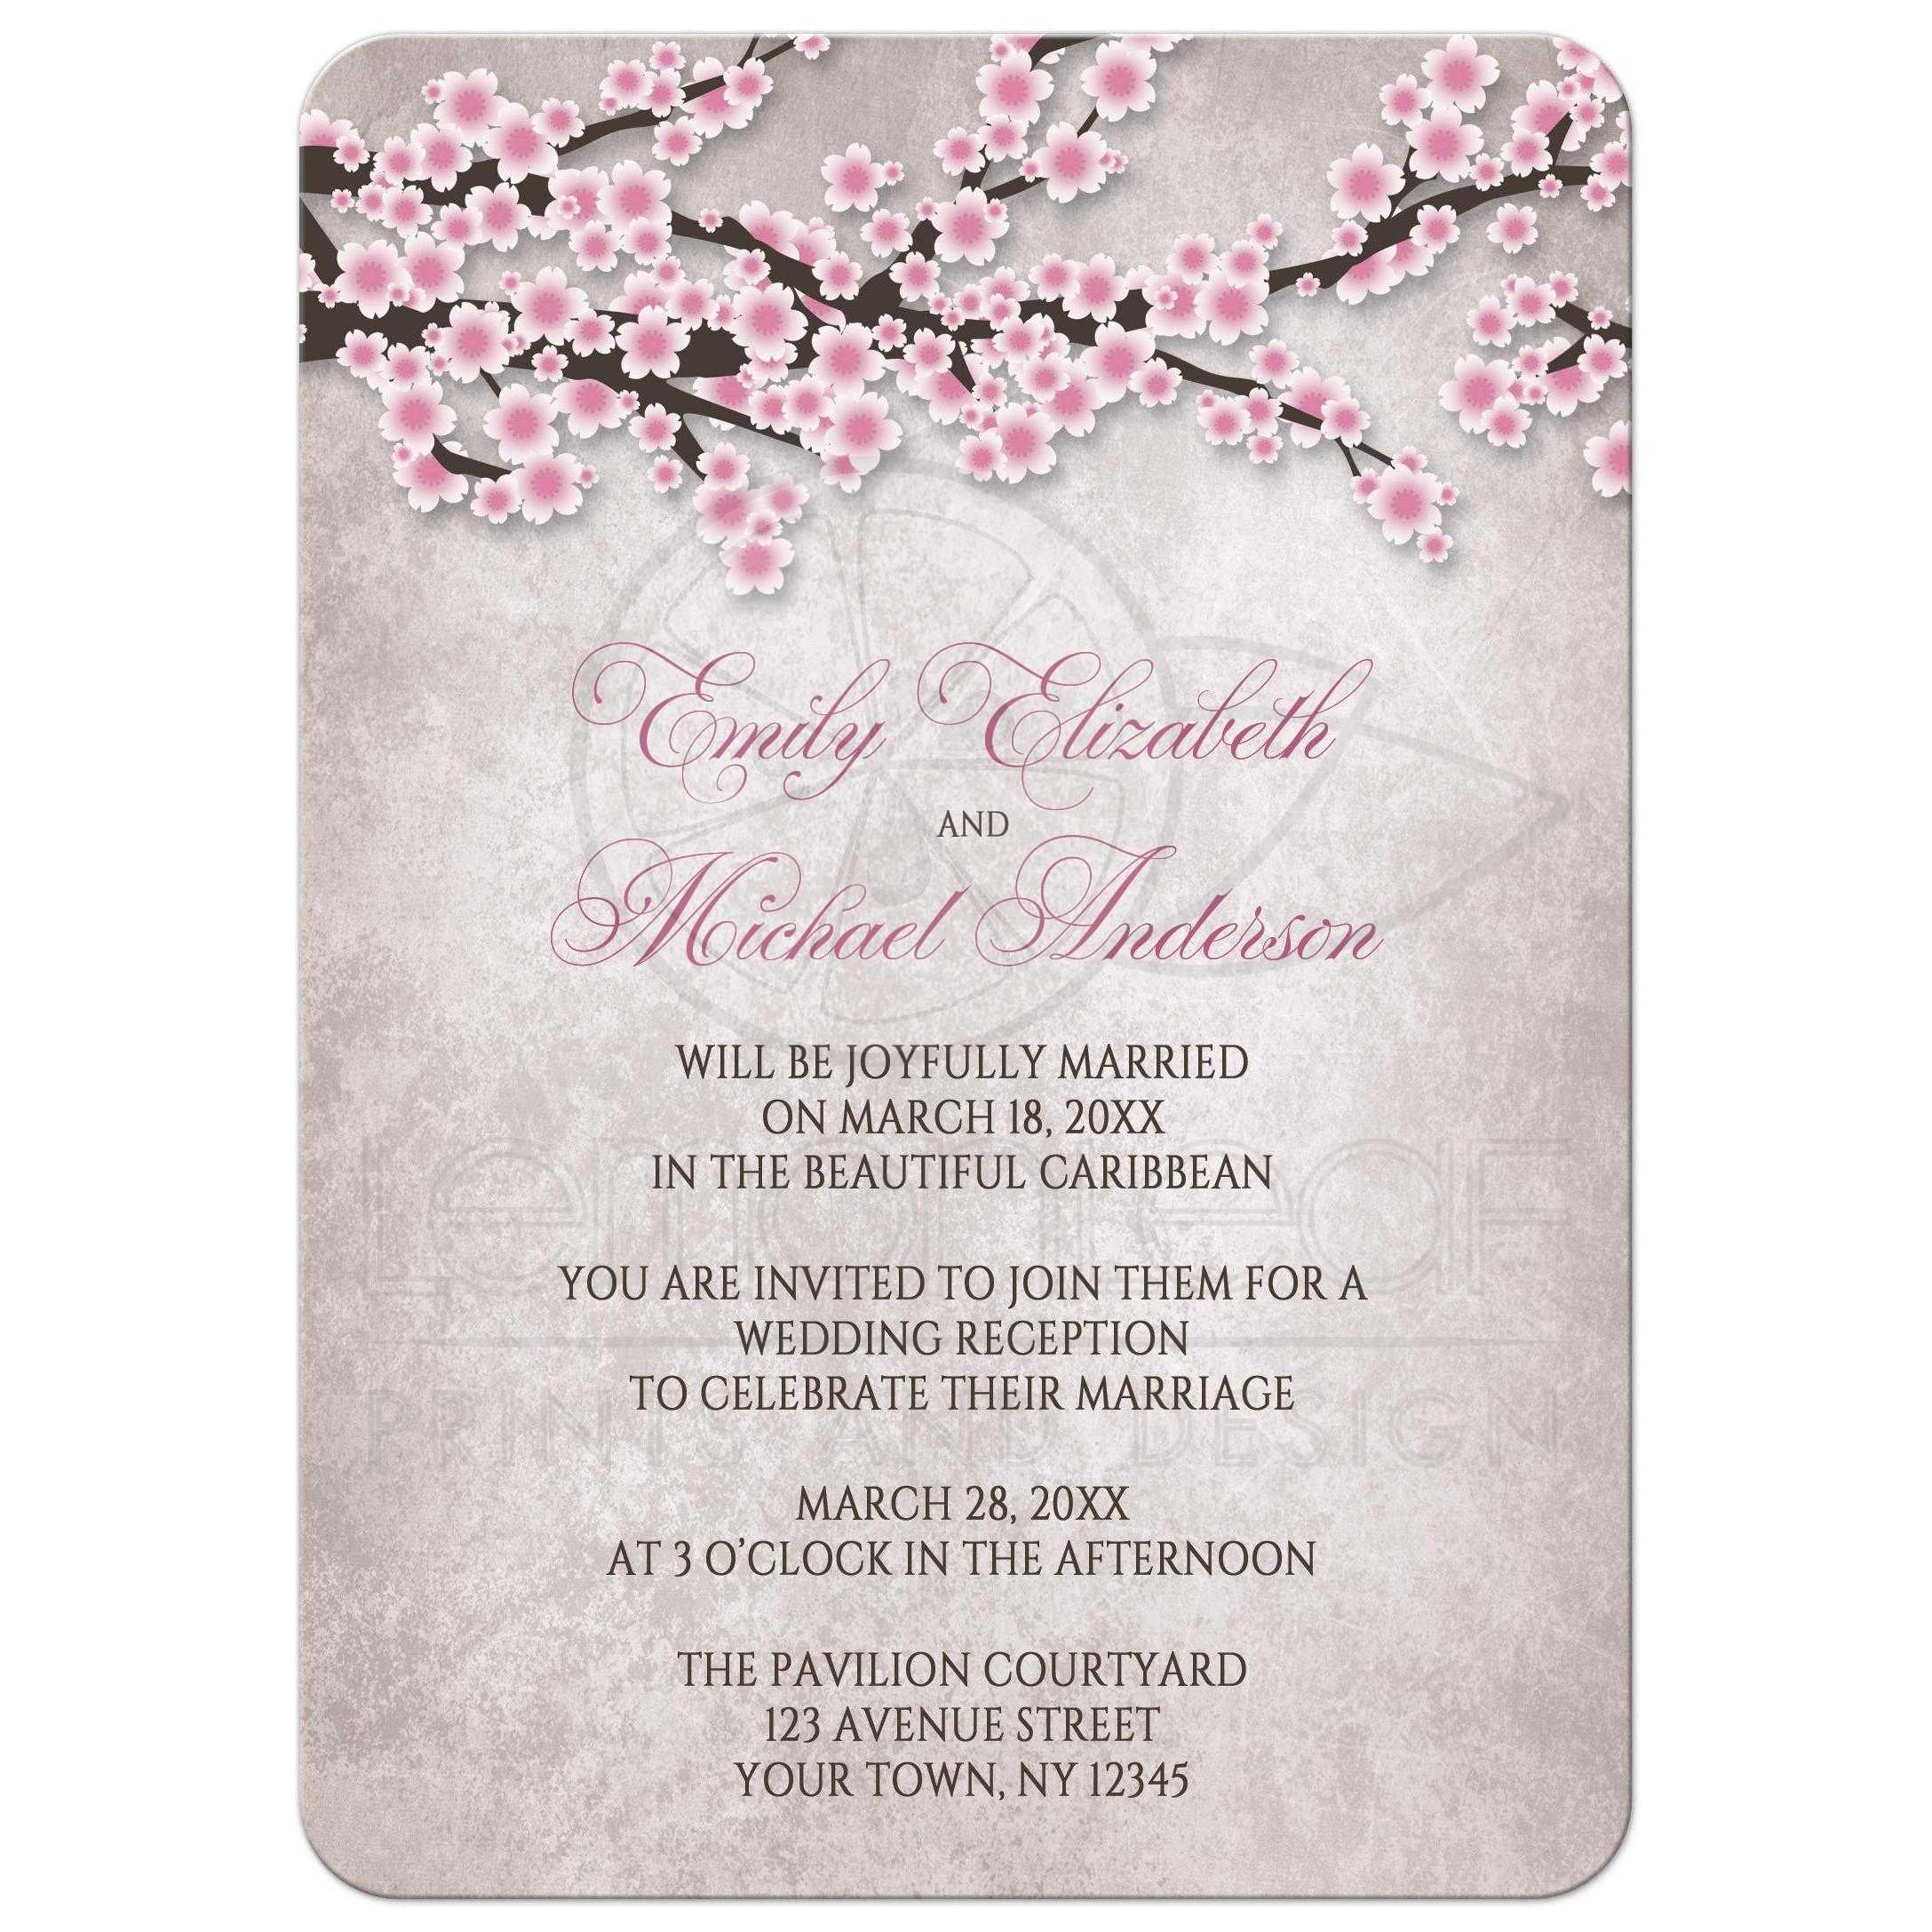 reception only invitations rustic pink cherry blossom